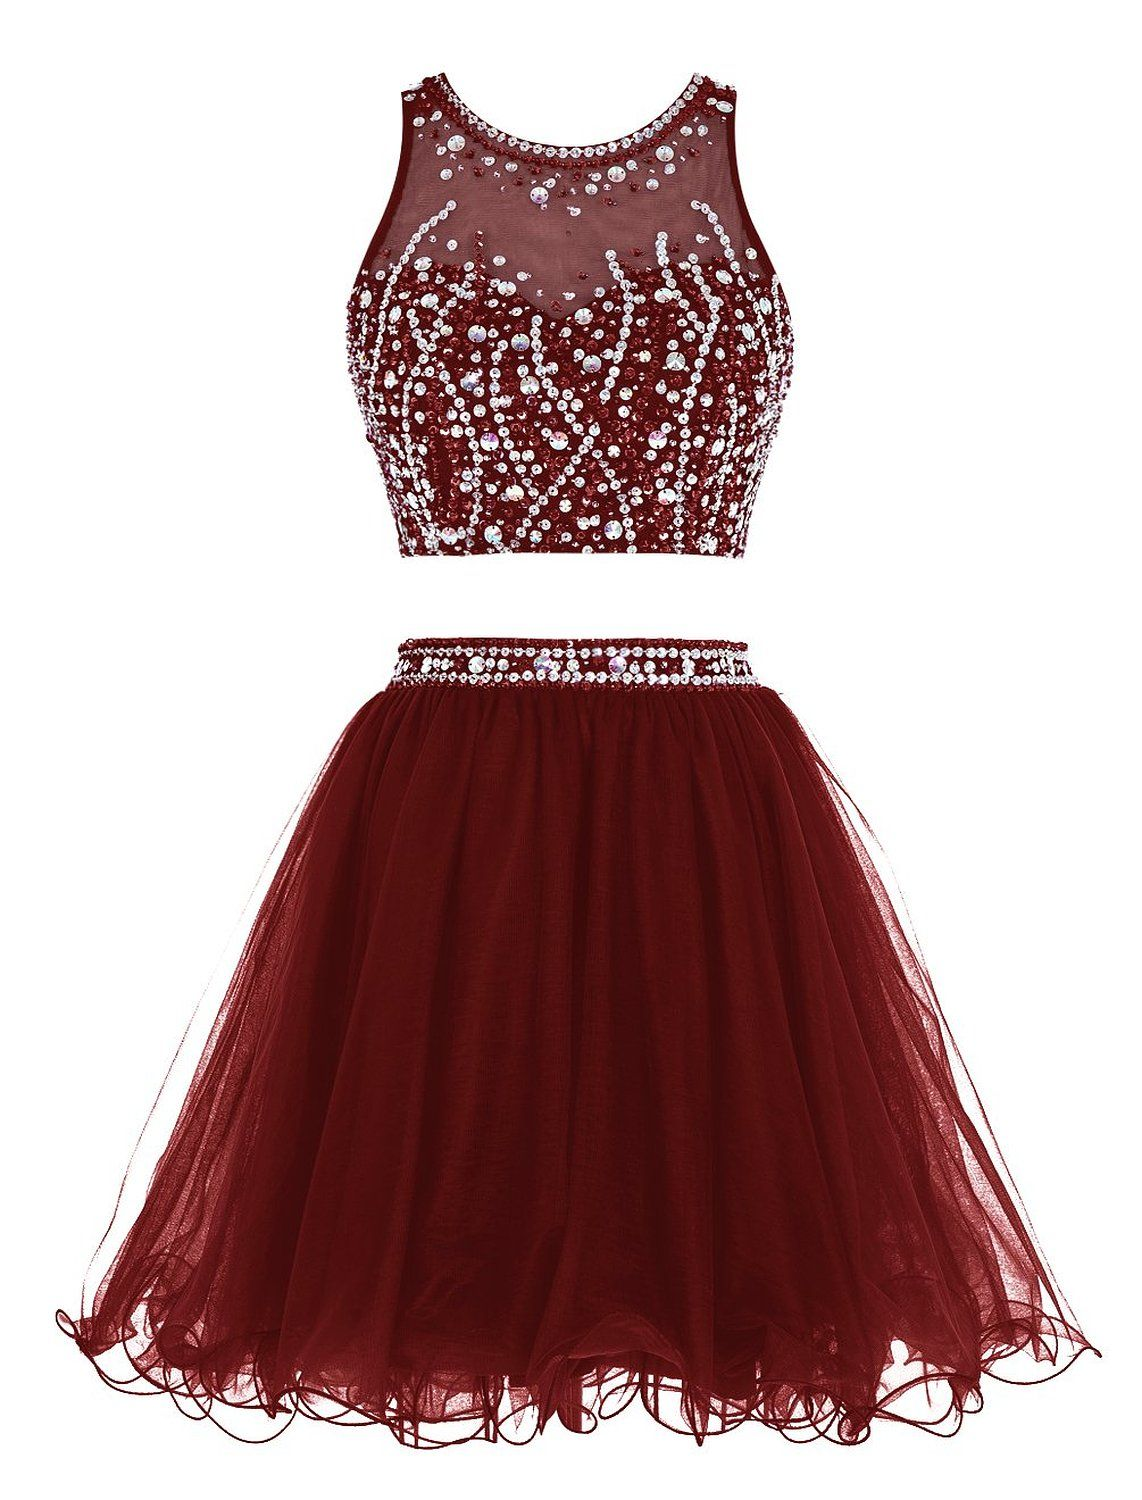 Tideclothes Short Beading Prom Dress Two Pieces Tulle Homecoming Dress  Burgundy US2 a7b8e661f